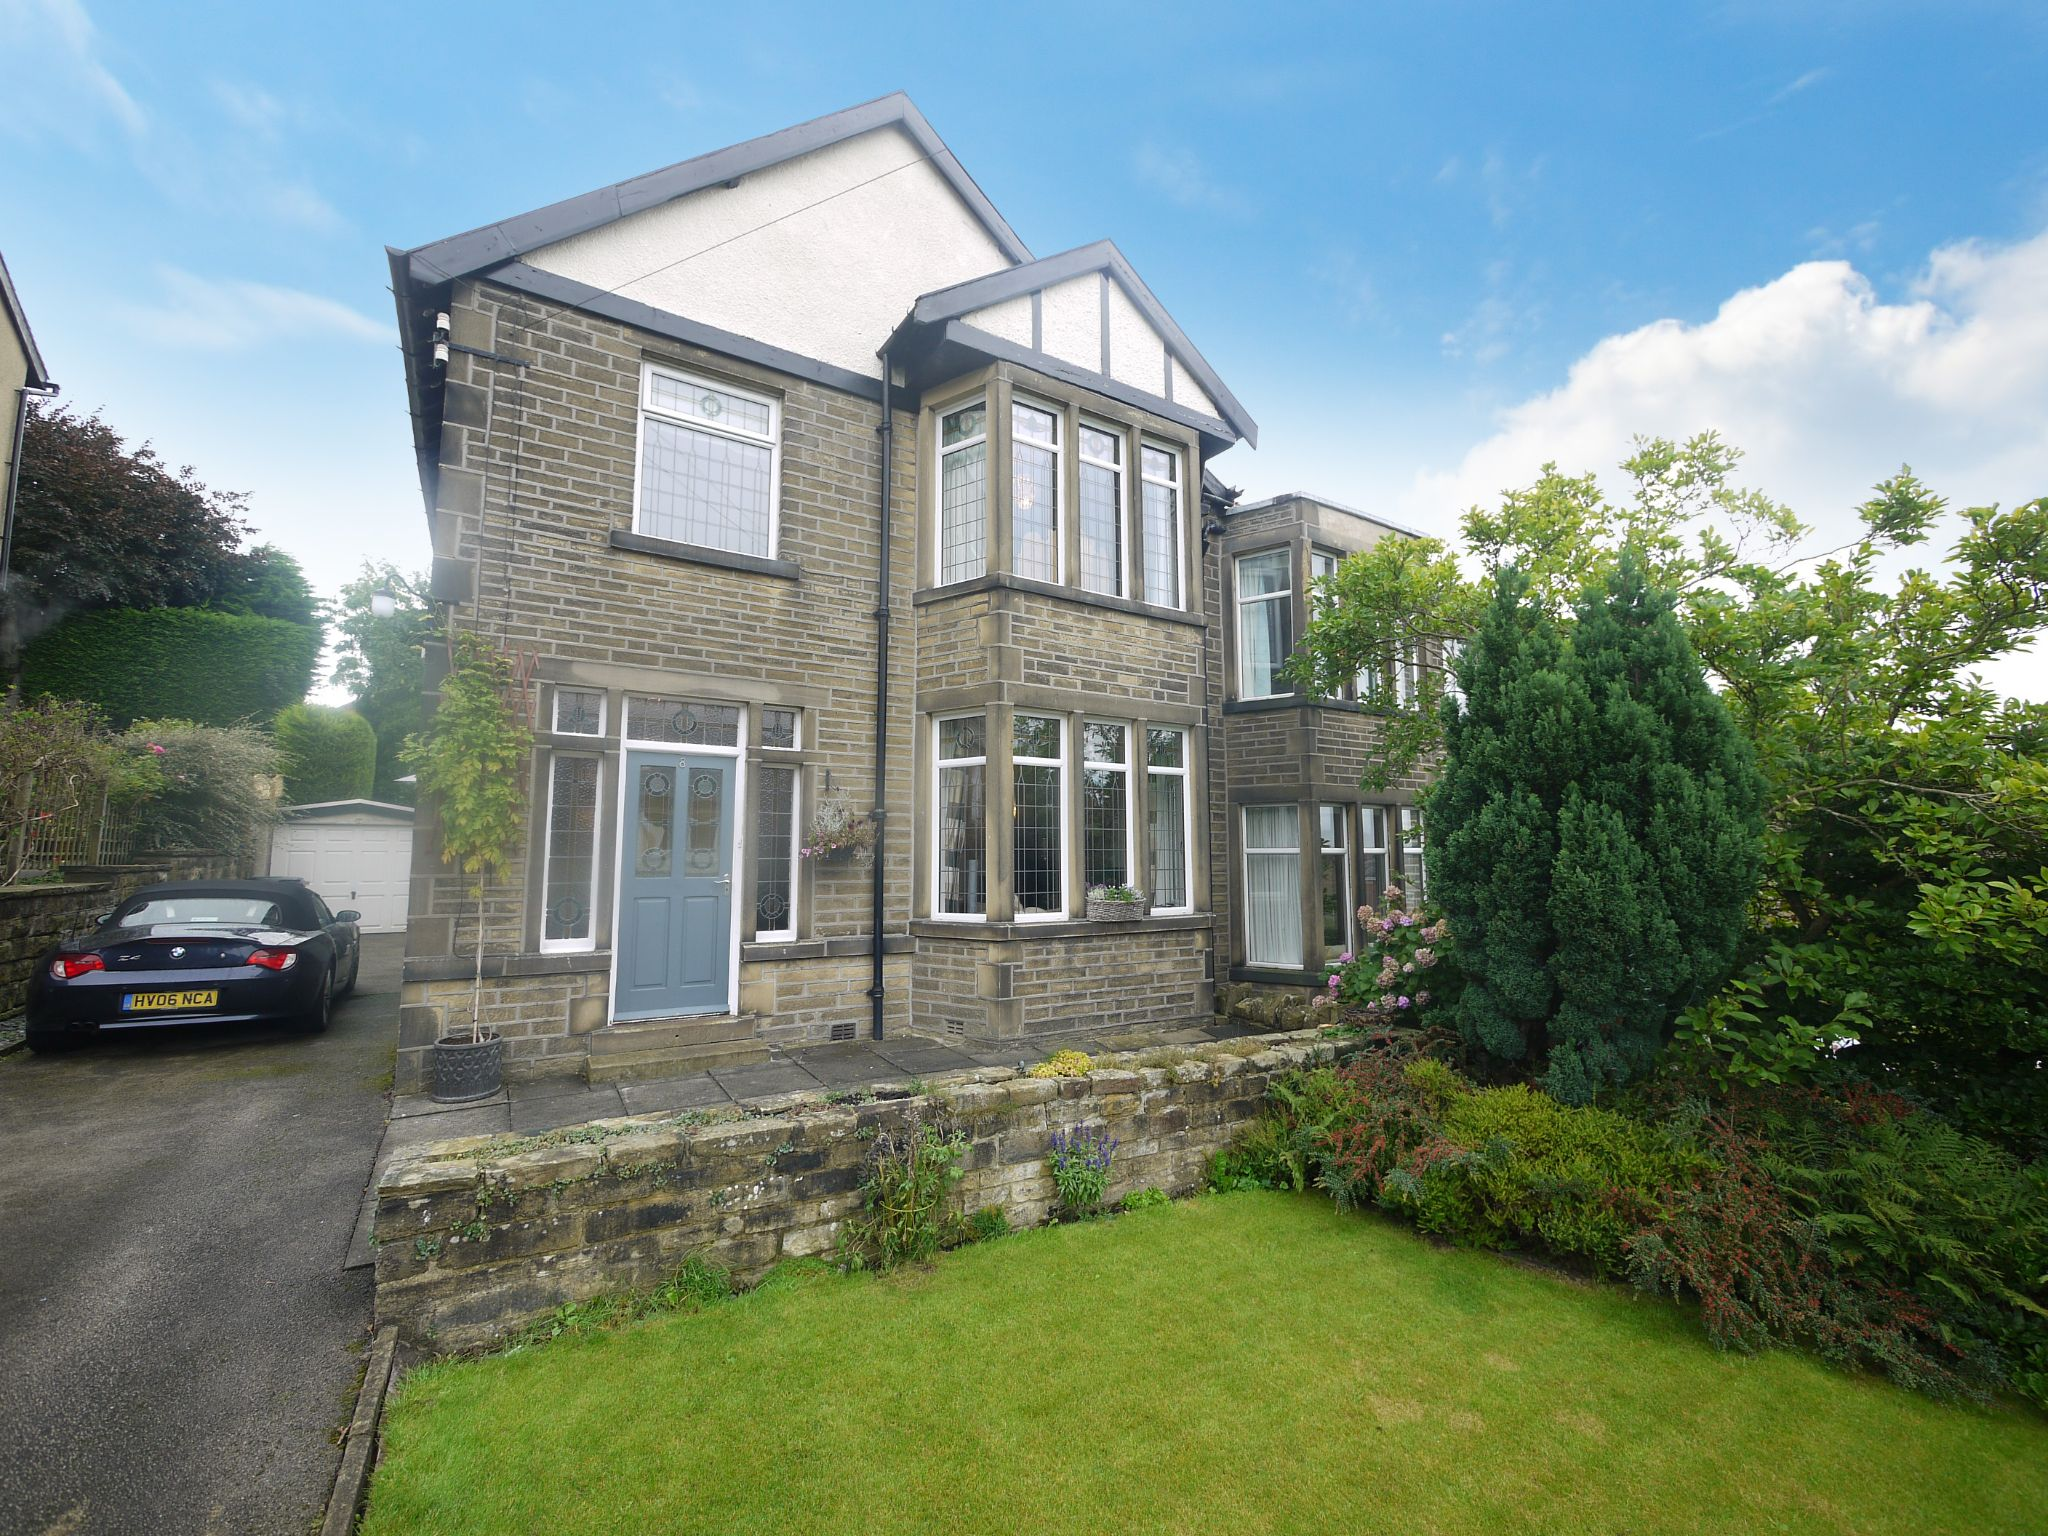 4 bedroom semi-detached house SSTC in Halifax - Main.